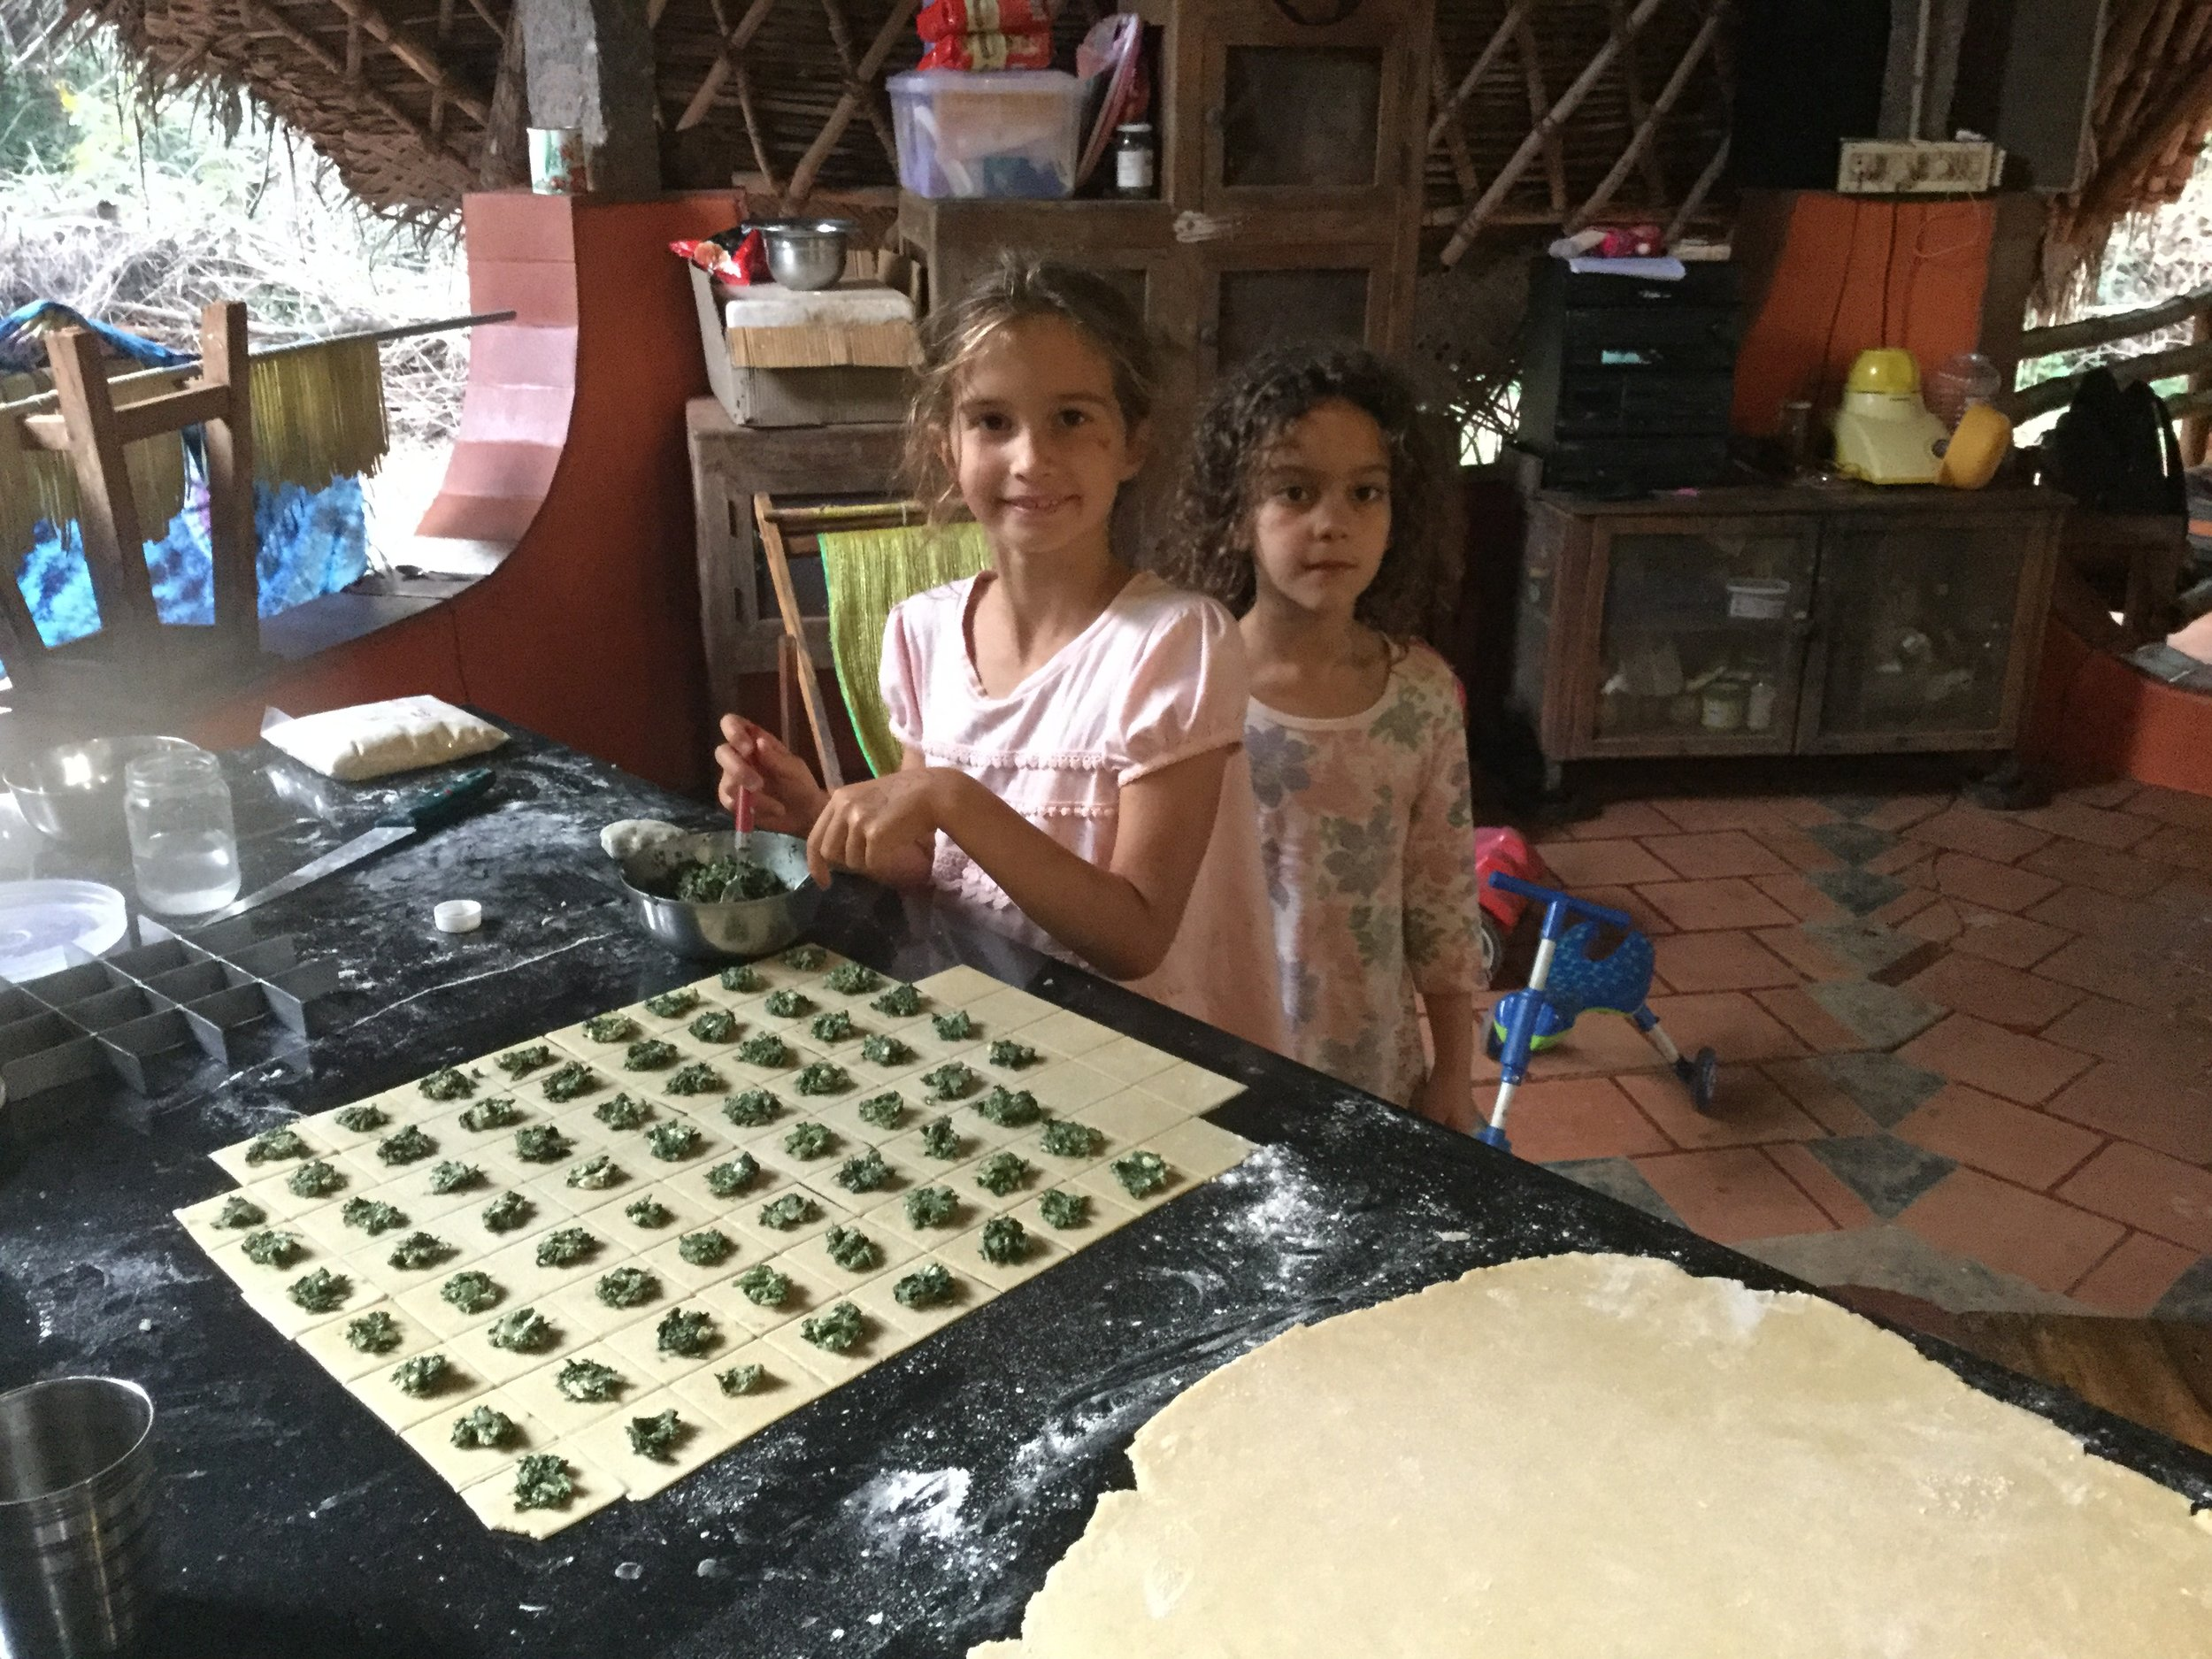 The children got to help with filling the ravioli - spinach, onion and feta mix prepared by Tamar. Marilena is a visitor from Greece, and was helping Lili.